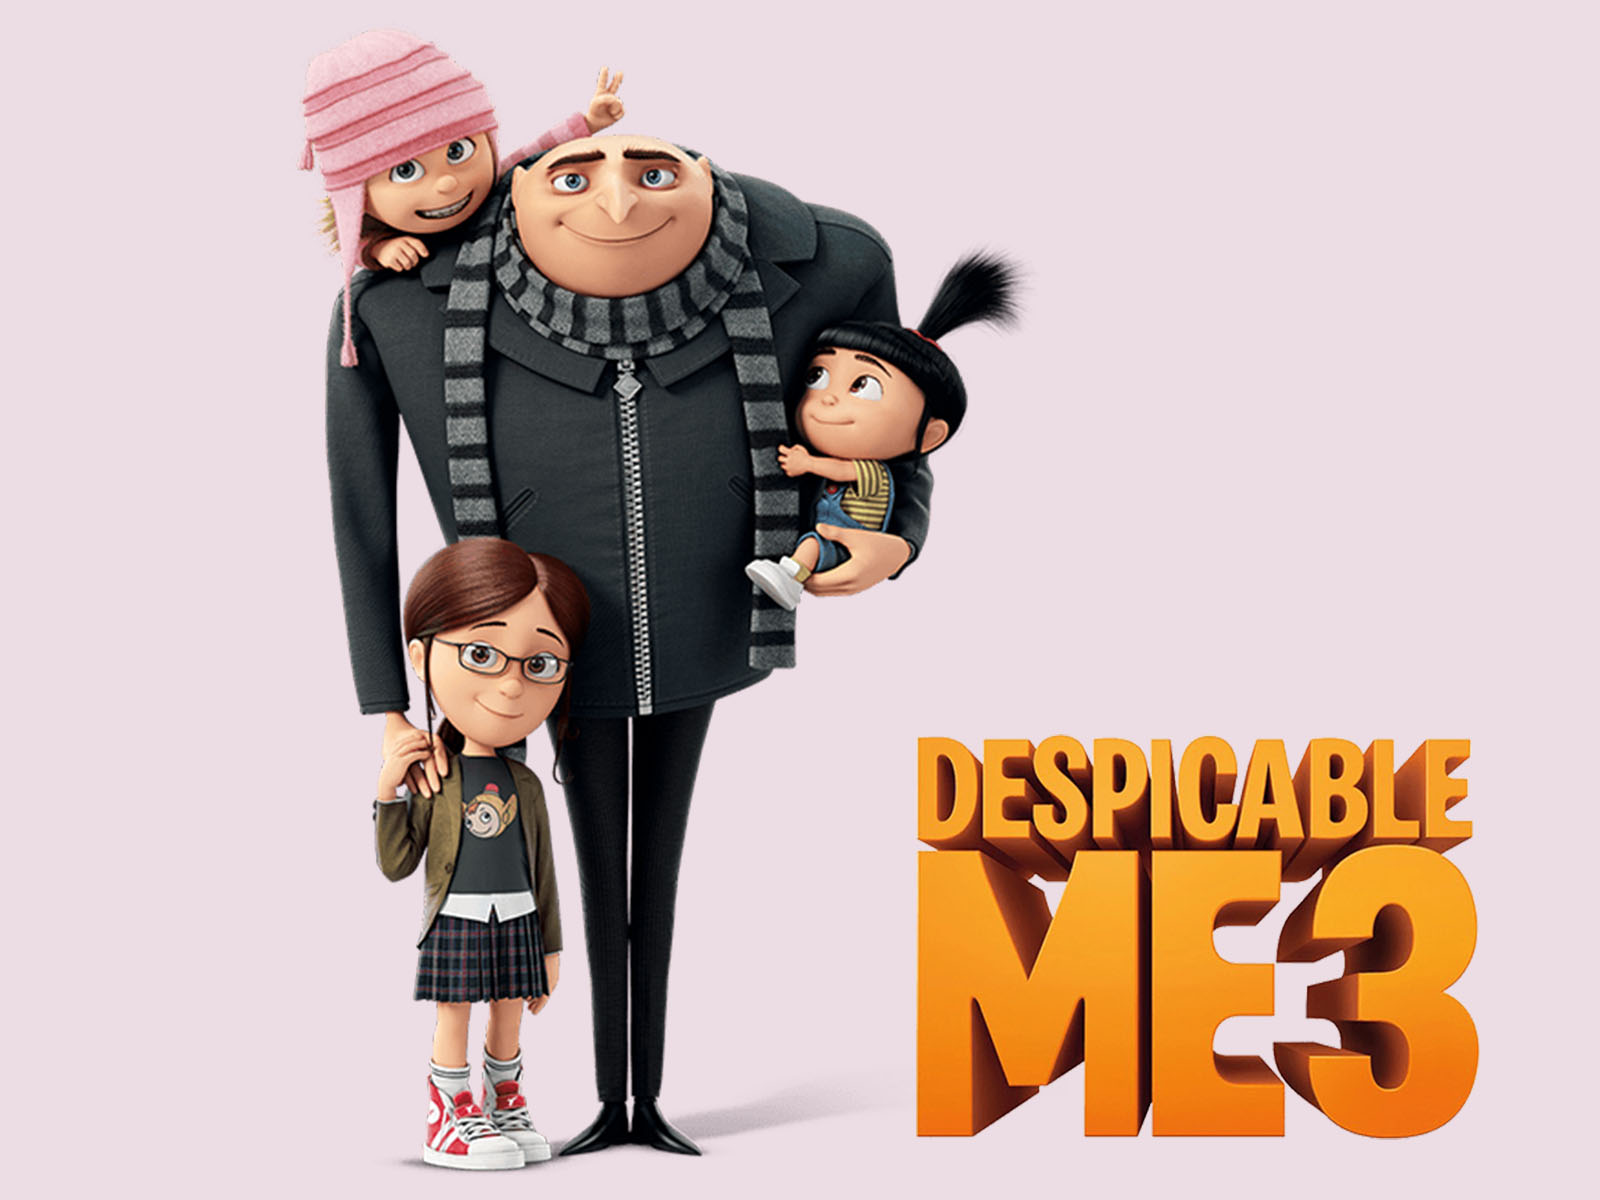 Despicable me backgrounds for powerpoint templates ppt backgrounds toneelgroepblik Images